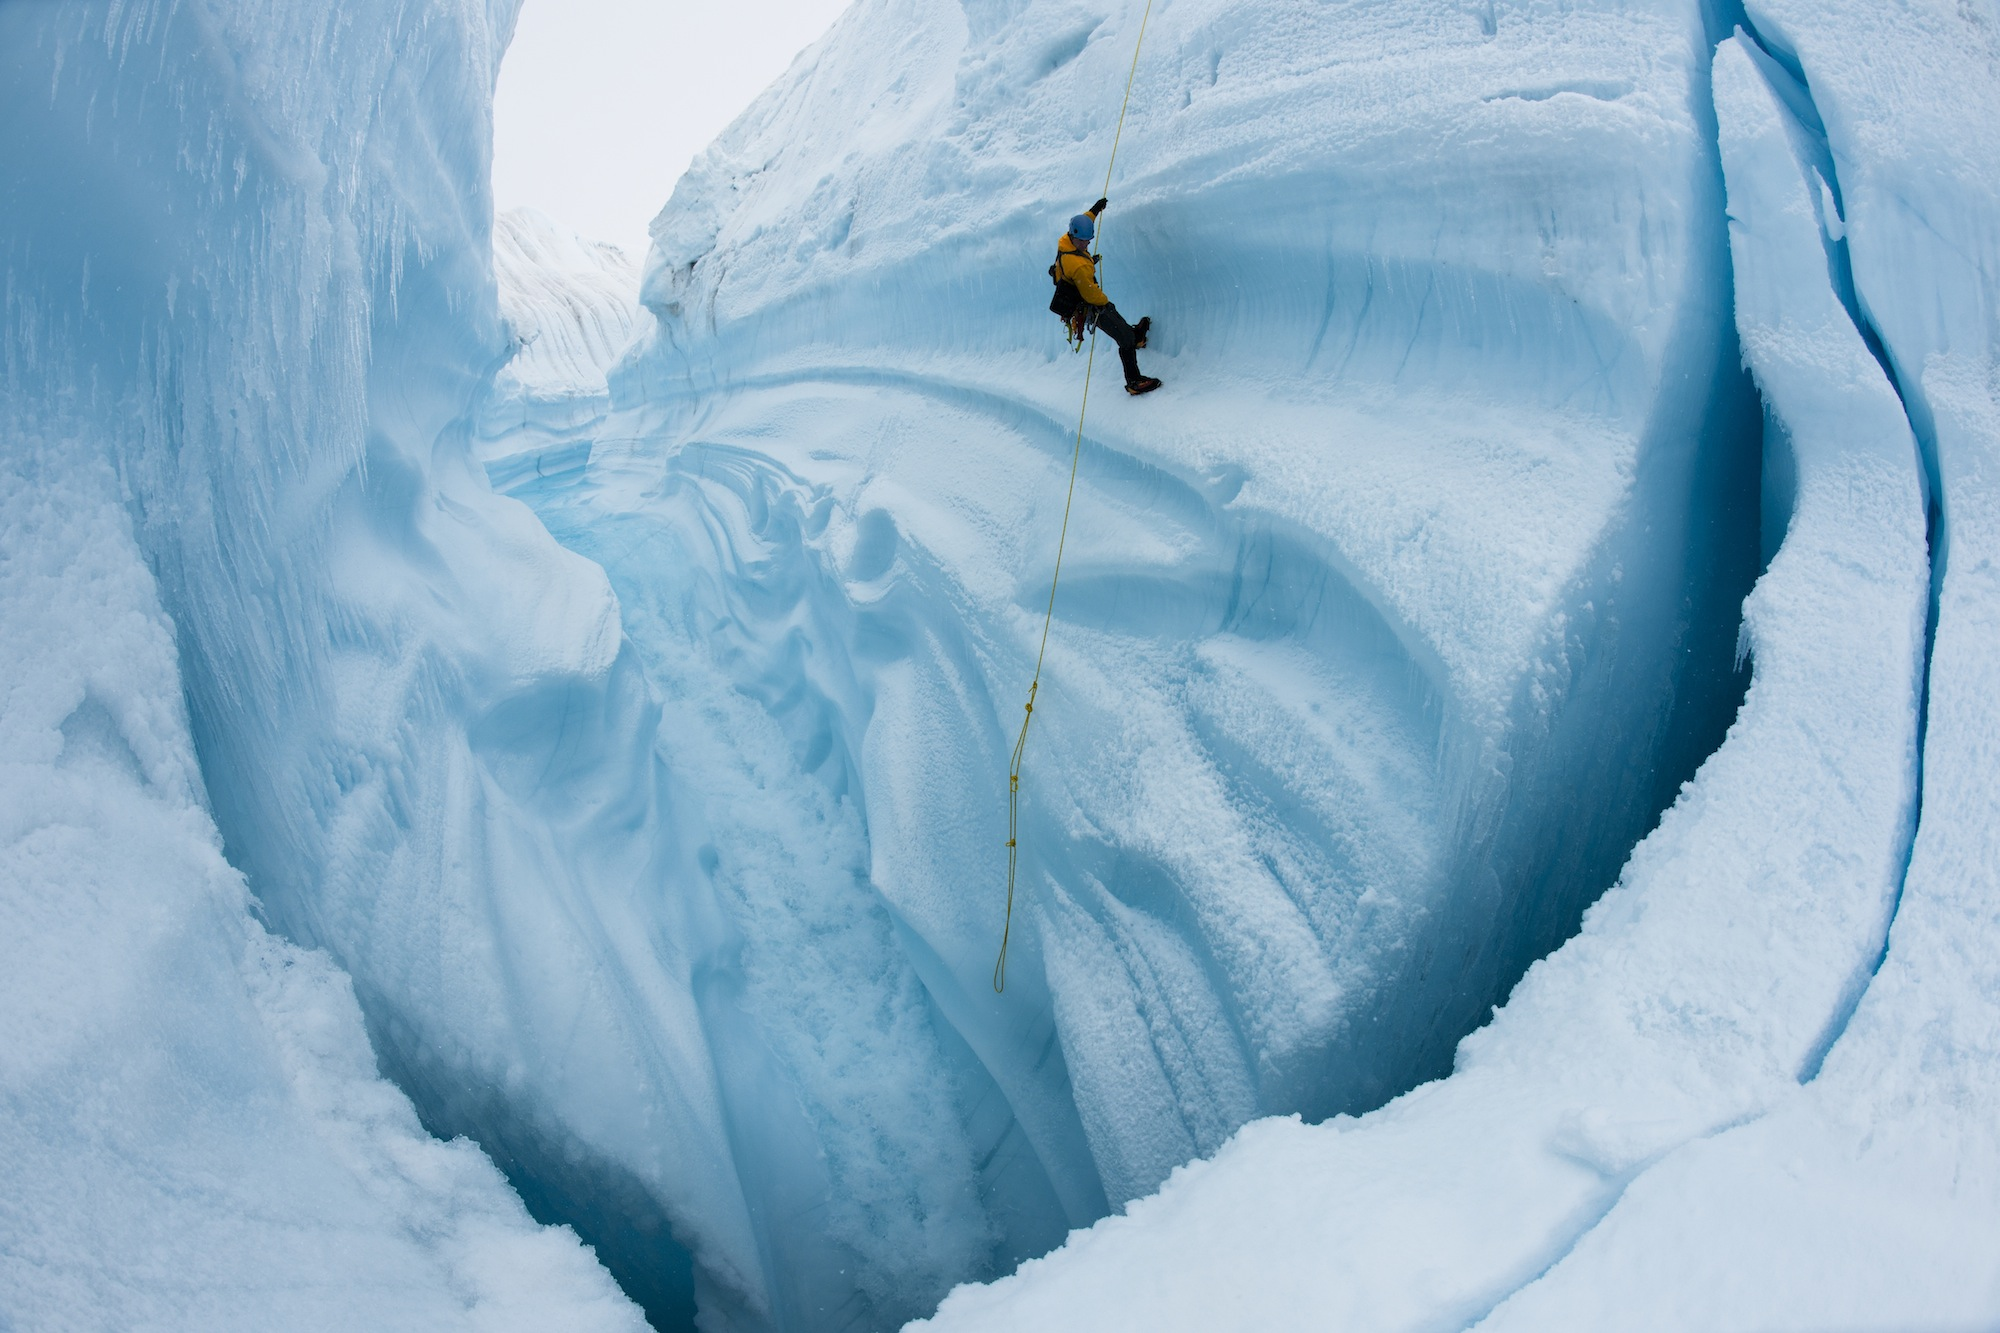 Chasing Ice, a documentary about photographer James Balog, plays this weekend as part of the One Earth Film Festival.